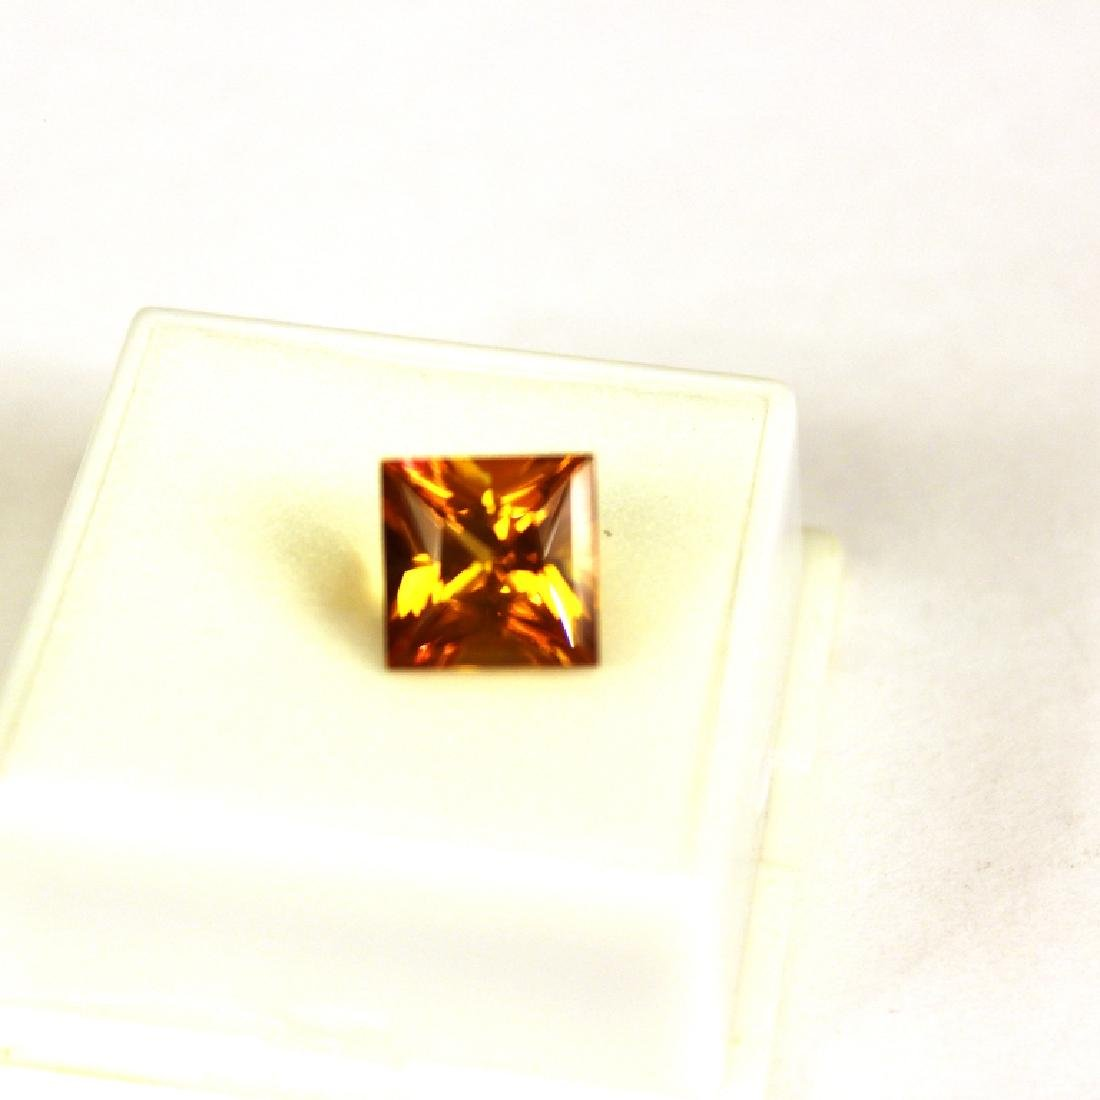 5.91 CT PC Treated Pineapple Topaz Gemstone - 4